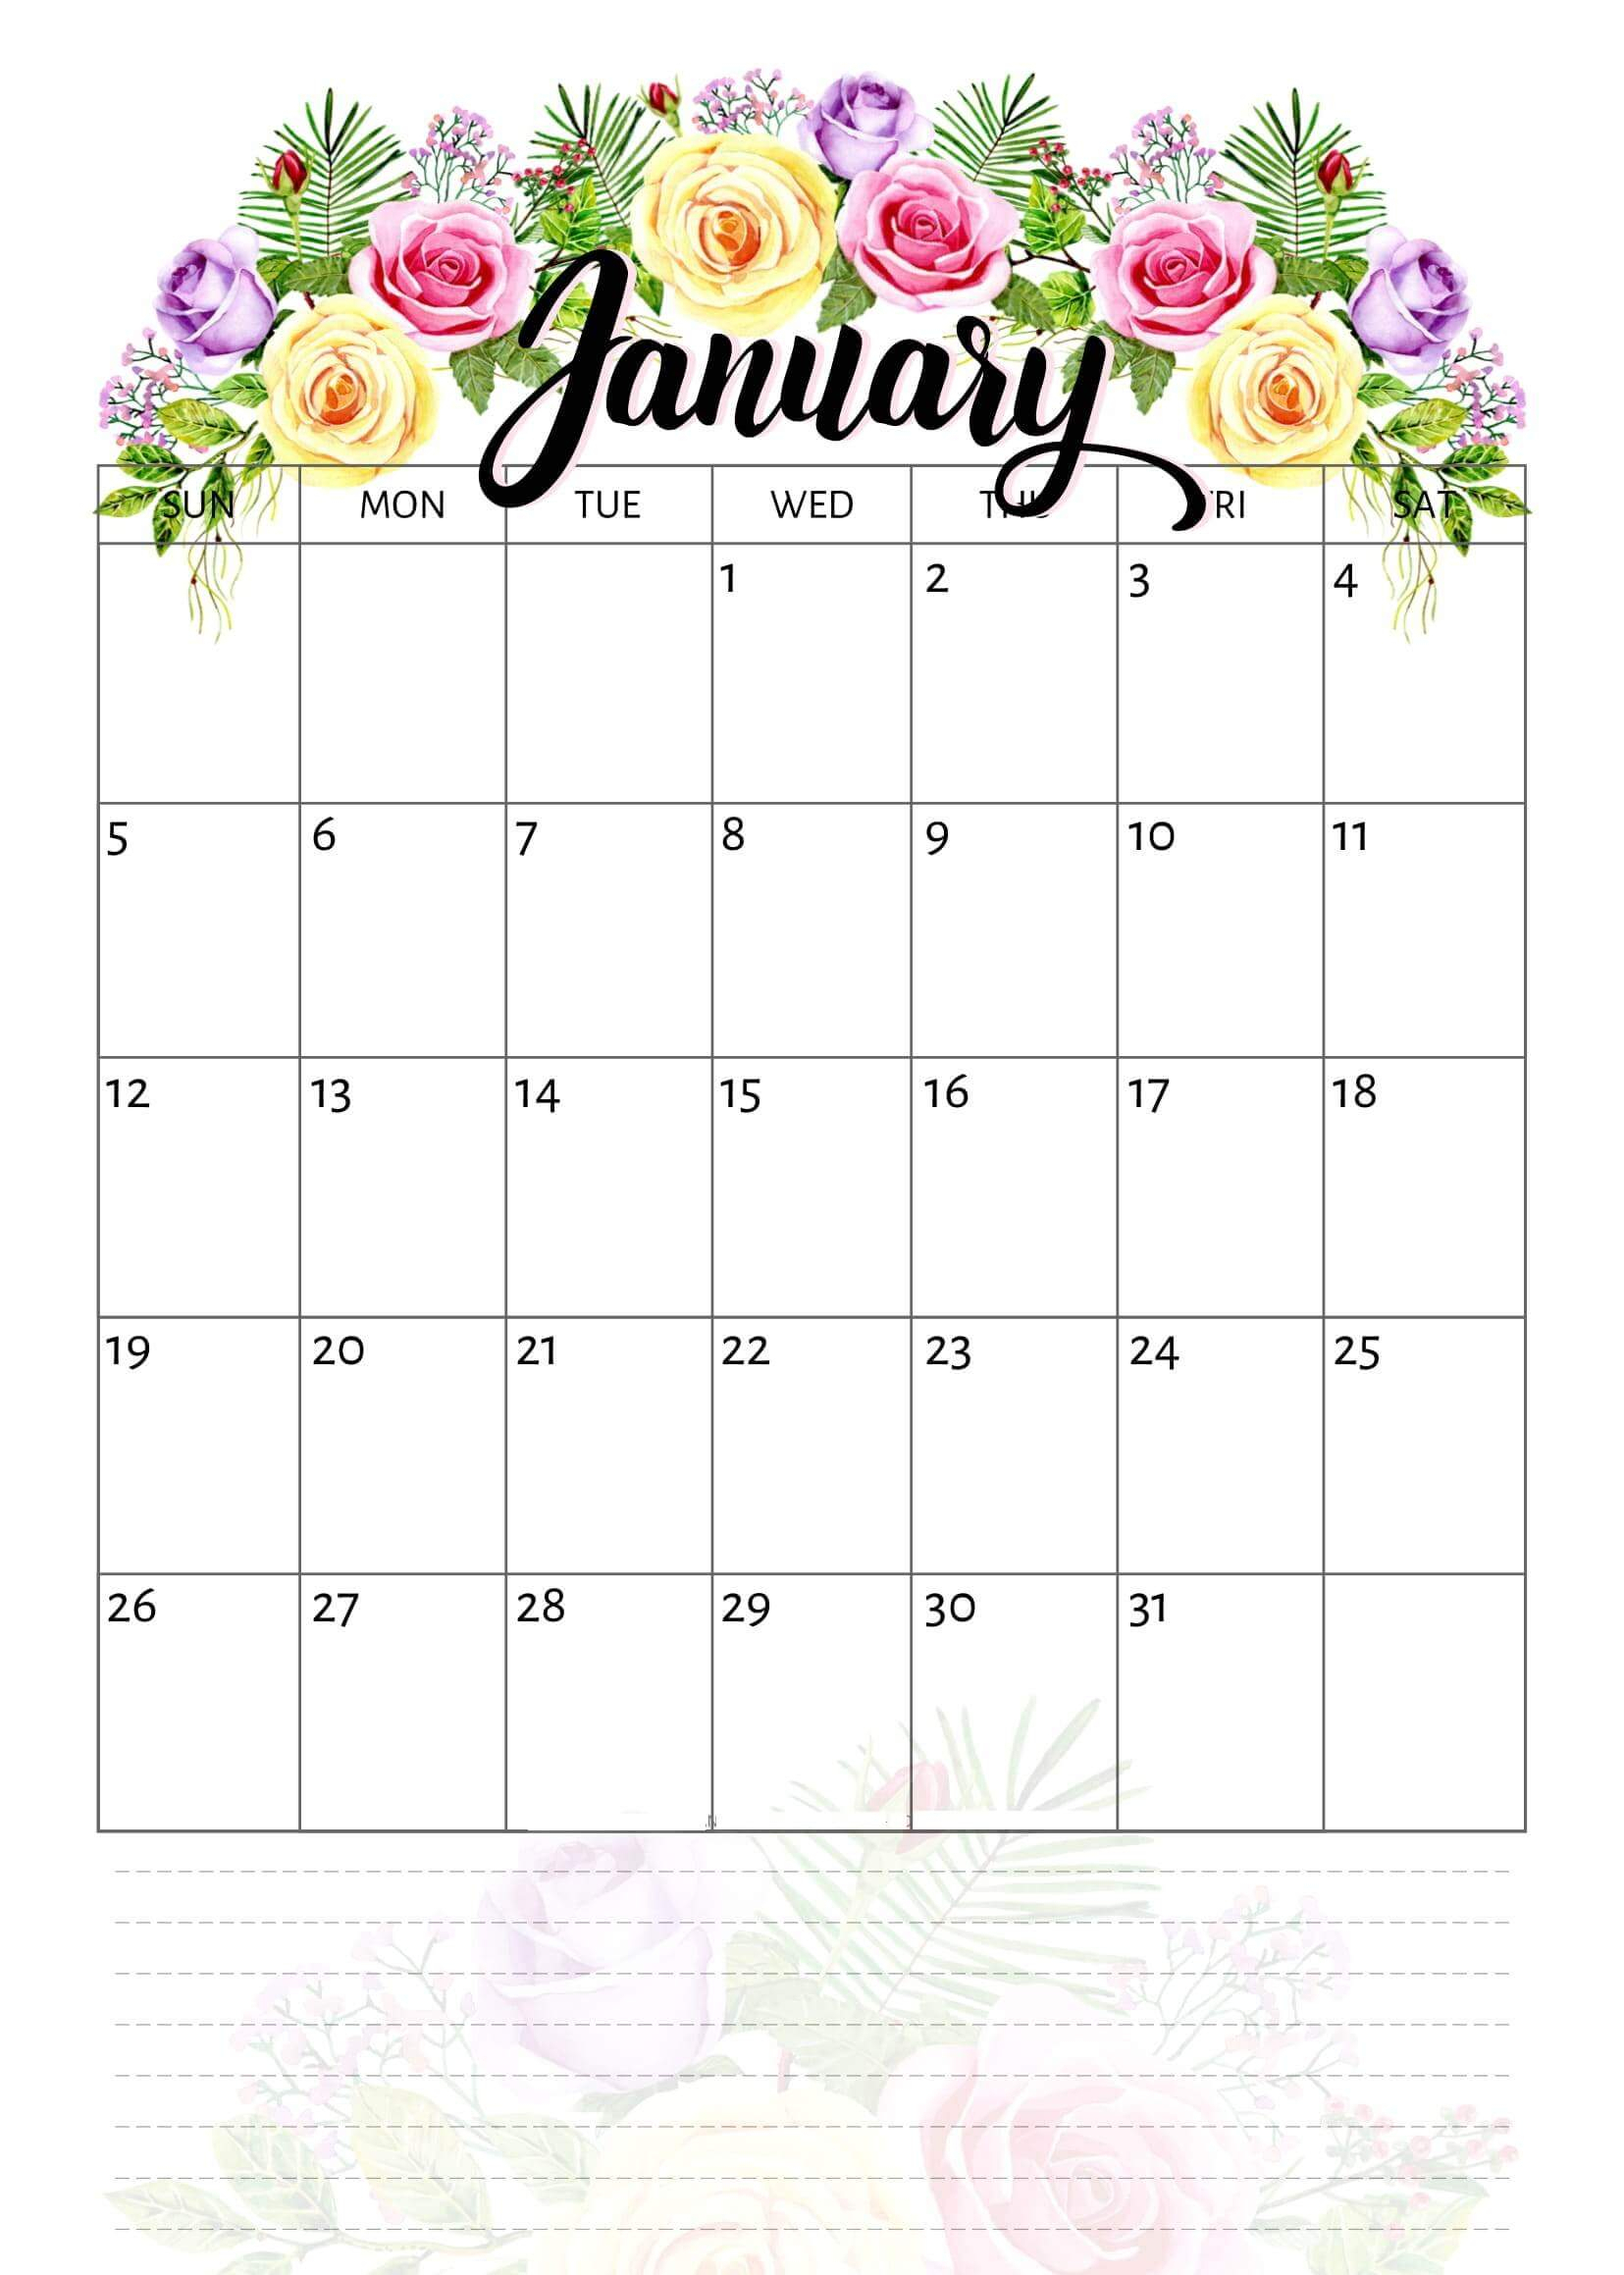 Take Pretty January 2020 Calendar | Calendar Printables